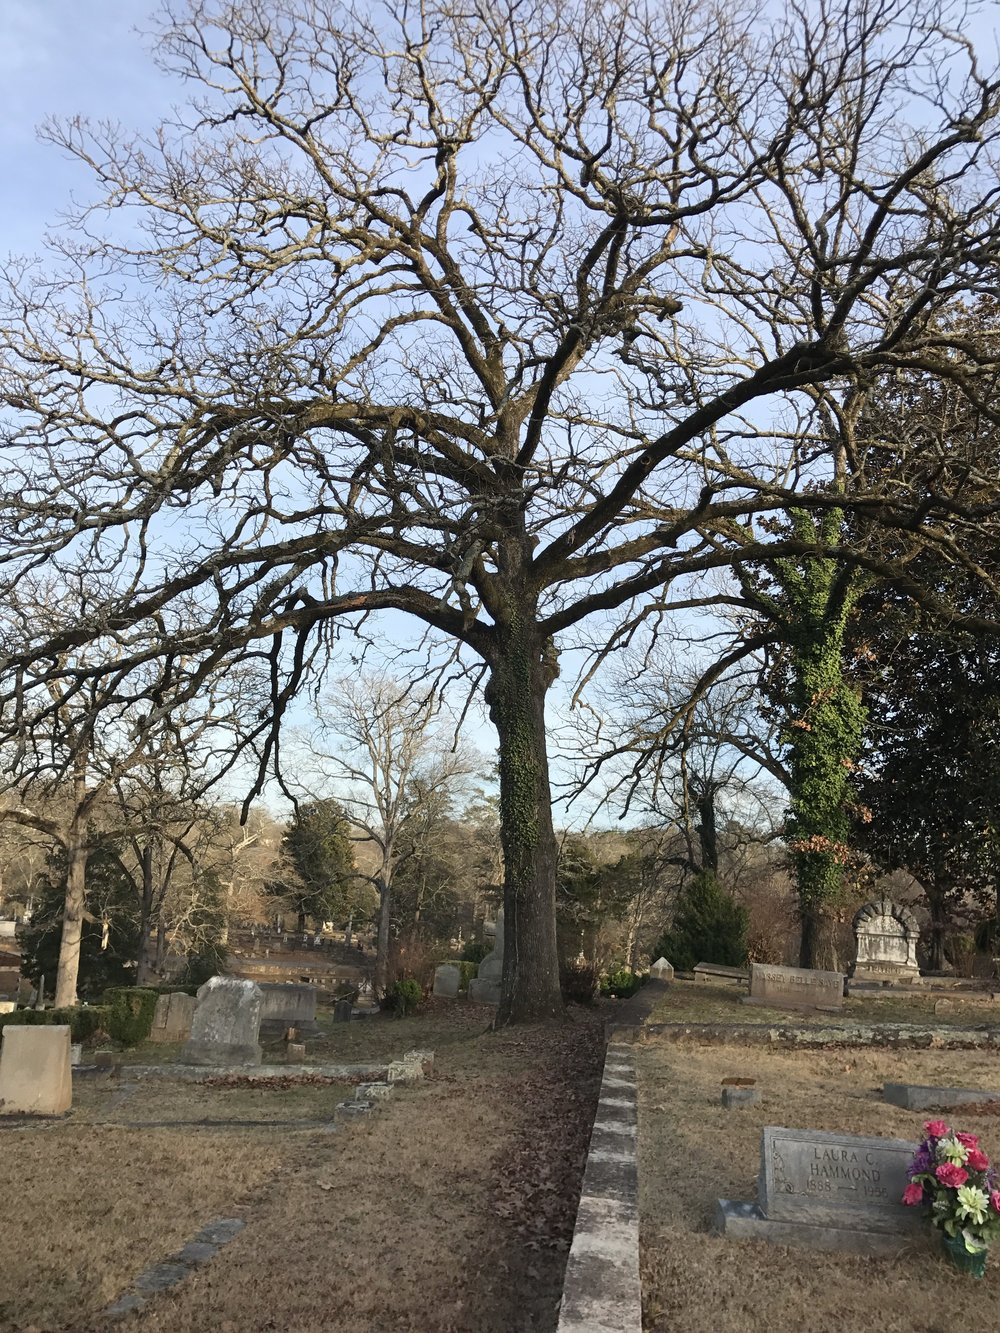 Work was completed in early 2017 on the tree maintenance plan for the burial ground.